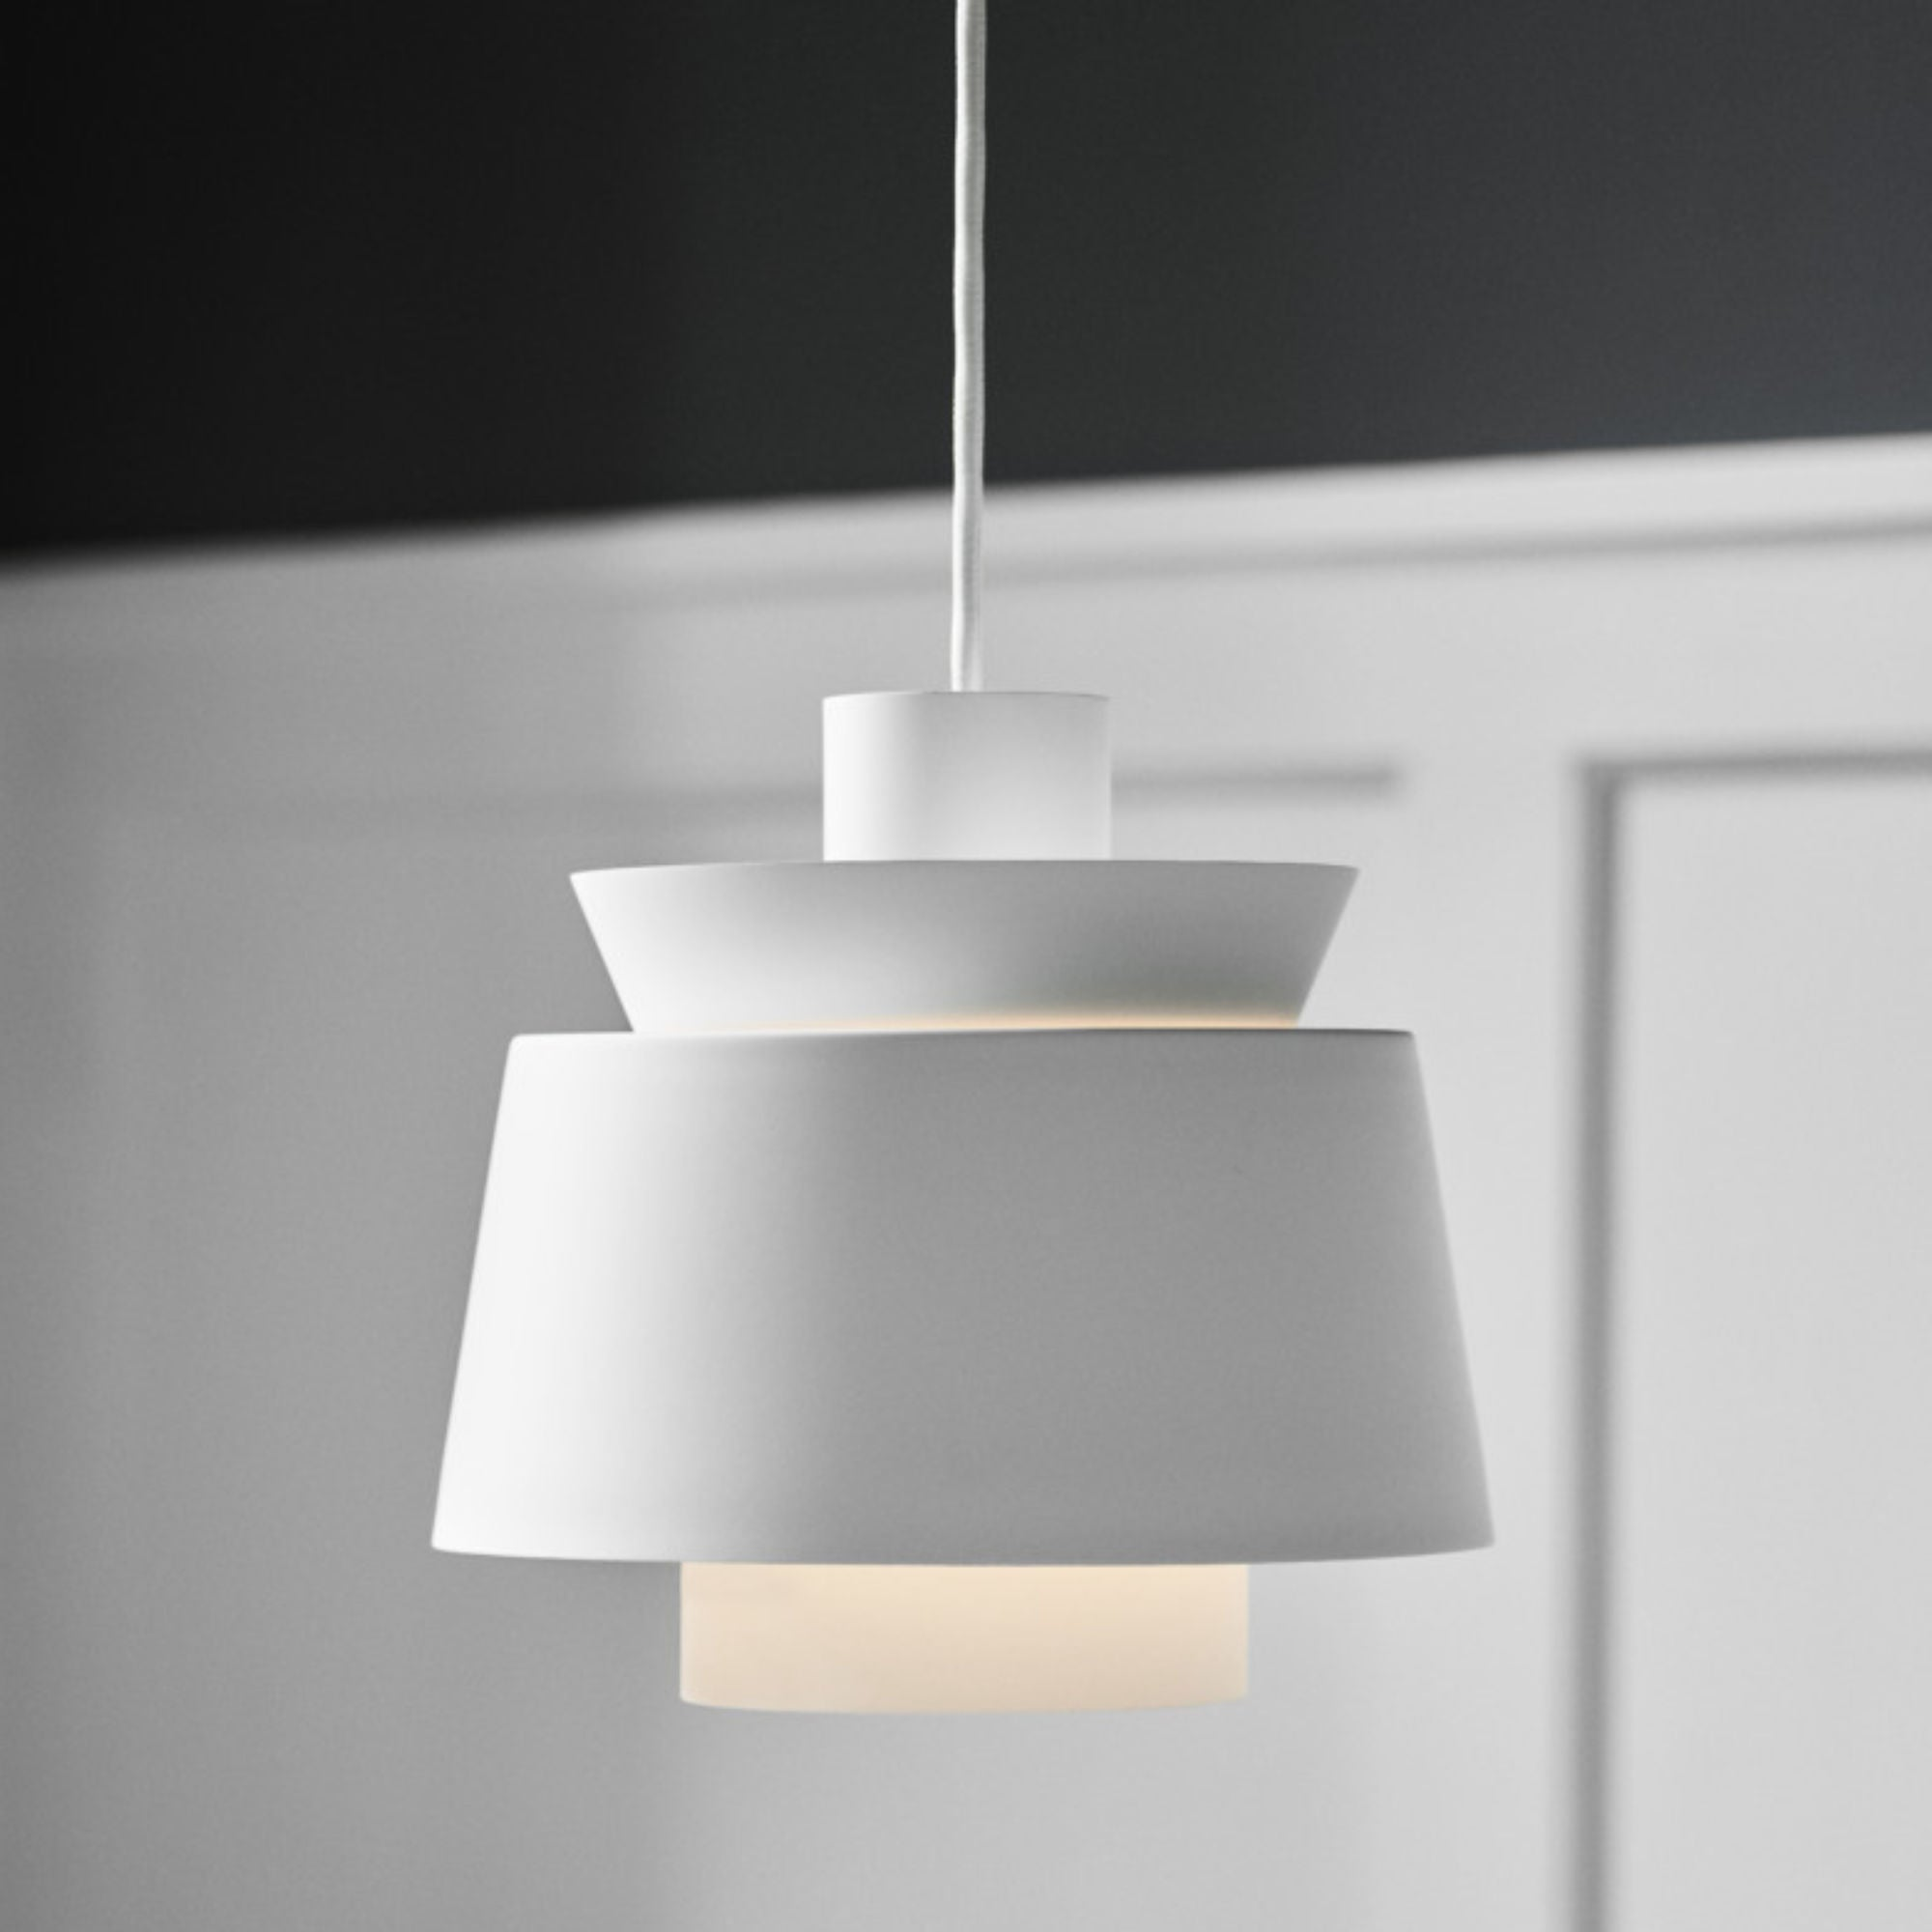 &Tradition JU1 Utzon pendant, white